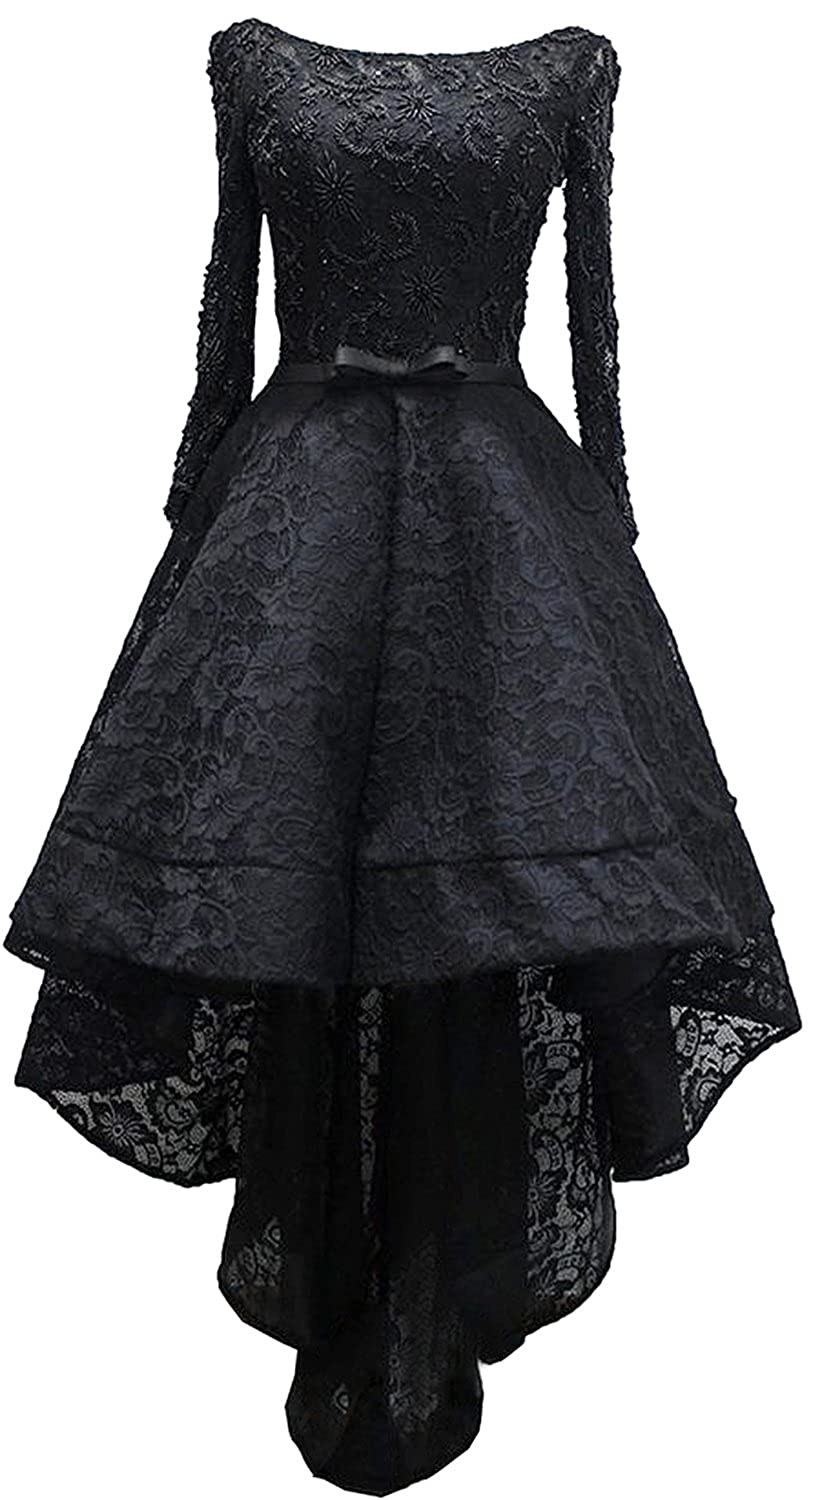 72c4c0d69a Amazon.com  Rong store Women s Lace High Low Long Sleeve Prom Evening Dress  Beads  Clothing